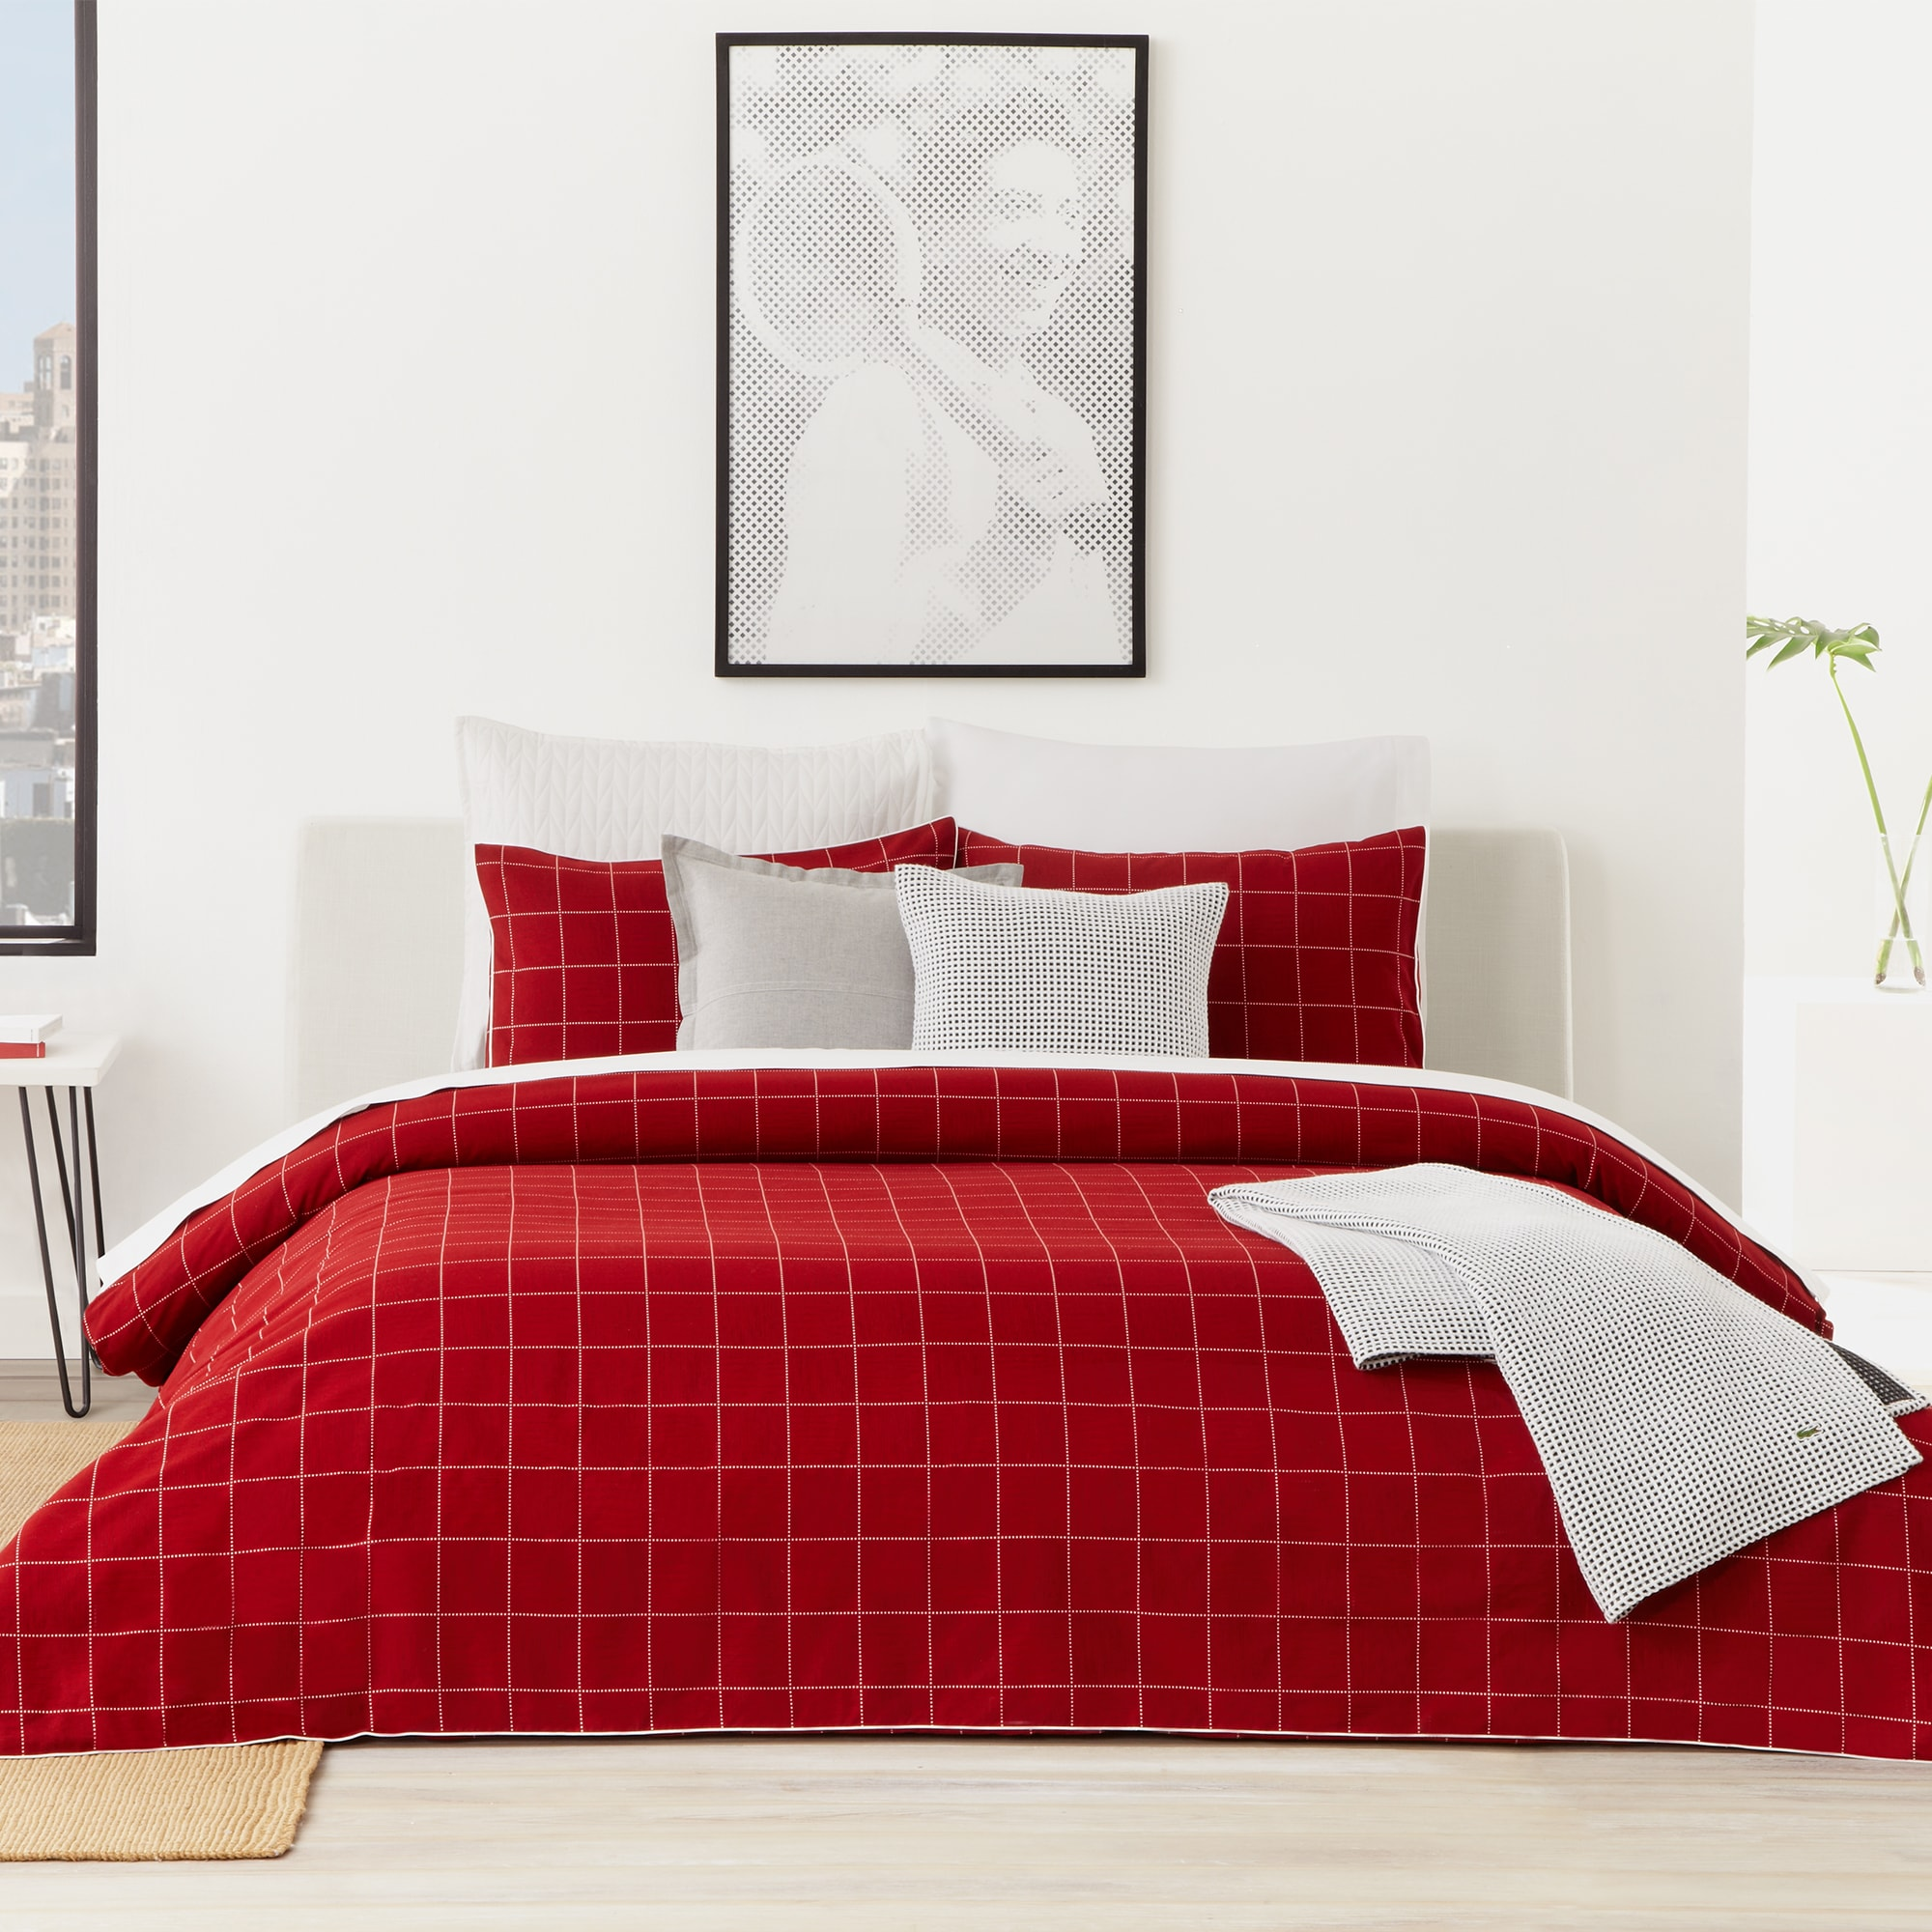 anchor crib lovely michael with lacoste jackson bedroom pulitzer marshalls pillow duvet cover lilly comforters beddingr interesting medium cute best of set by bed sets bedding size